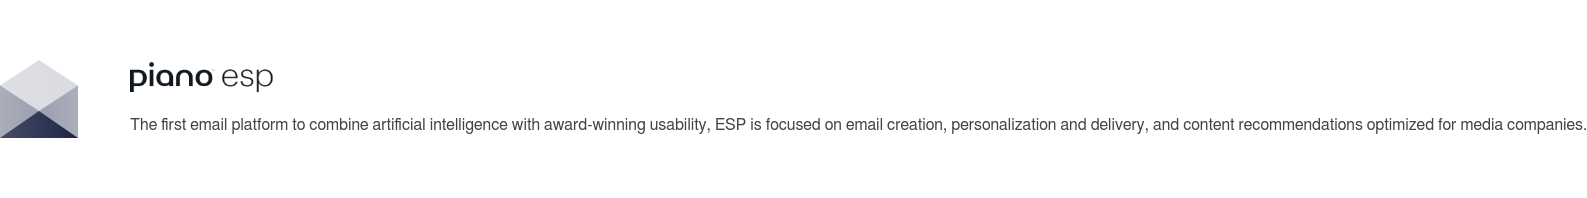 The first email platform to combine artificial intelligence with award-winning  usability, ESP is focused on email creation, personalization and delivery, and  content recommendations optimized for media companies.